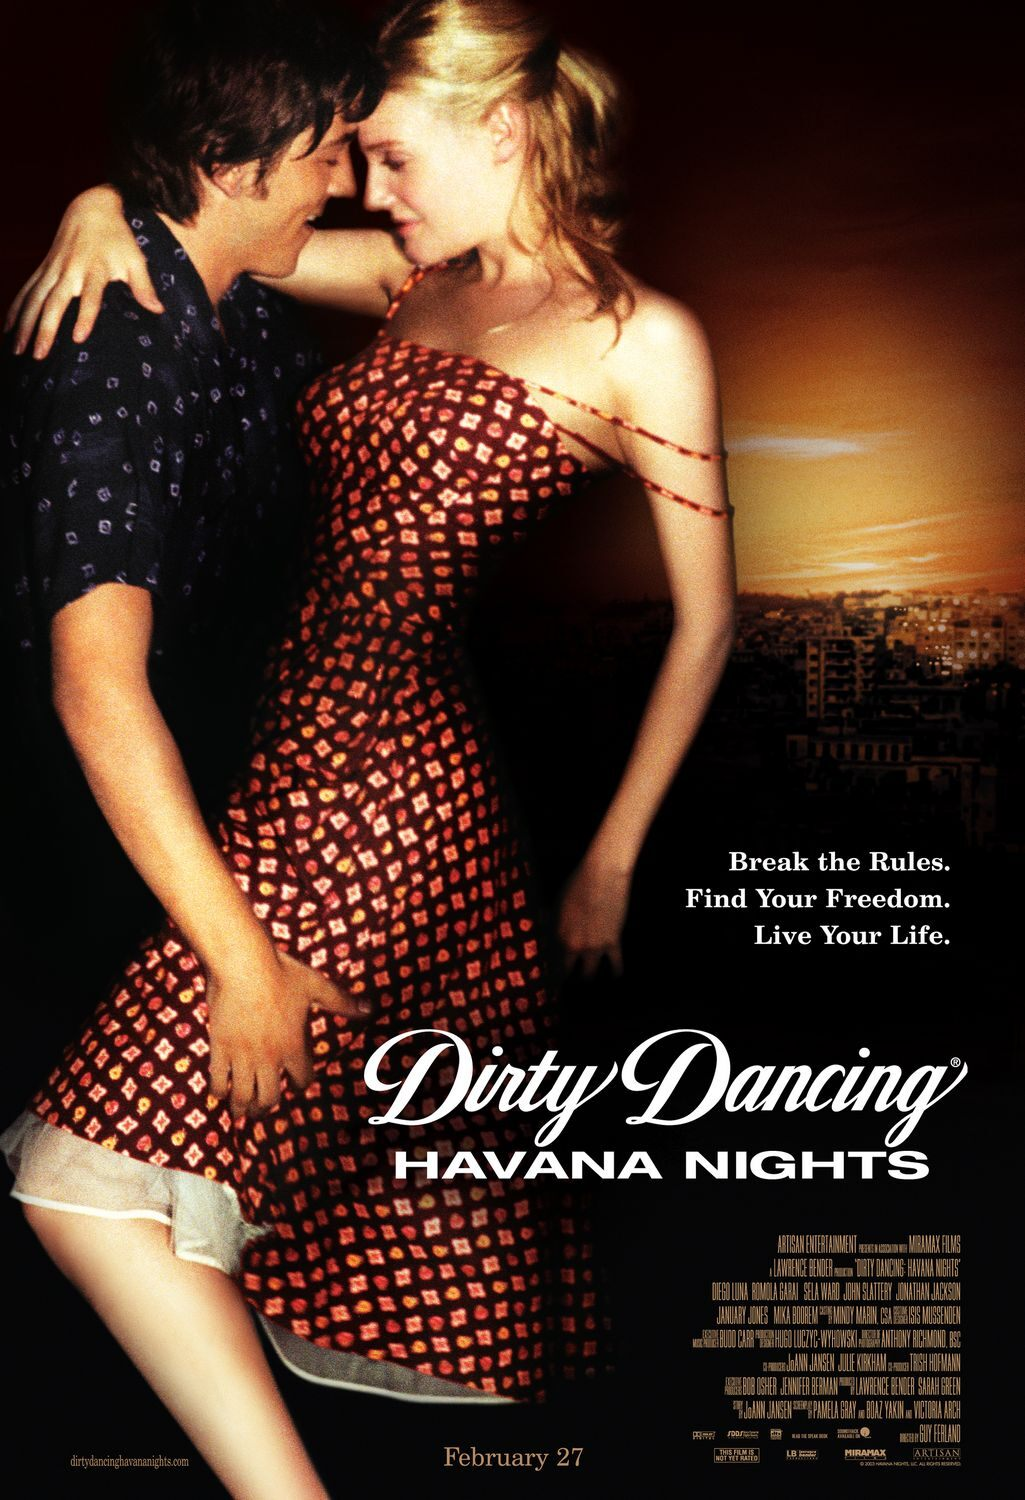 Movie Poster - Dirty Dancing: Havana Nights